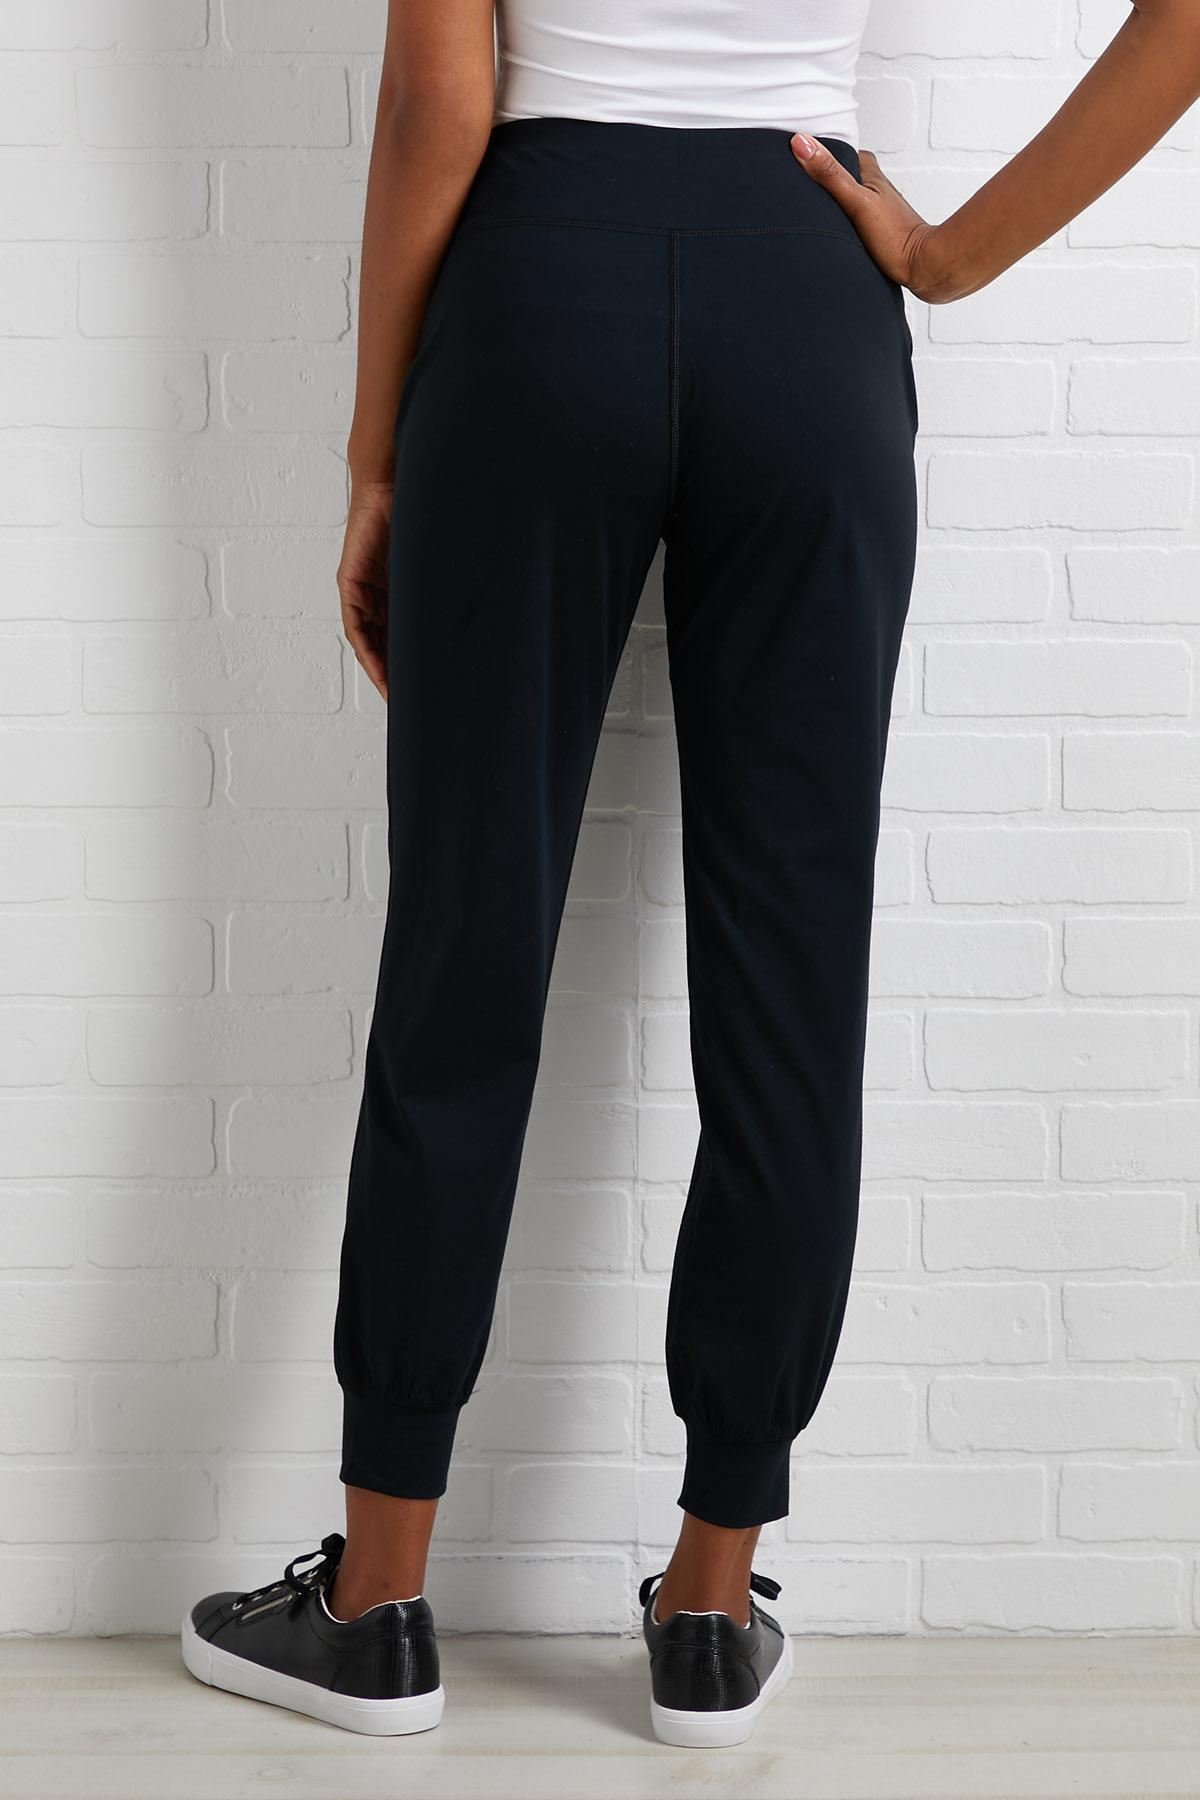 Going For A Jog Pants